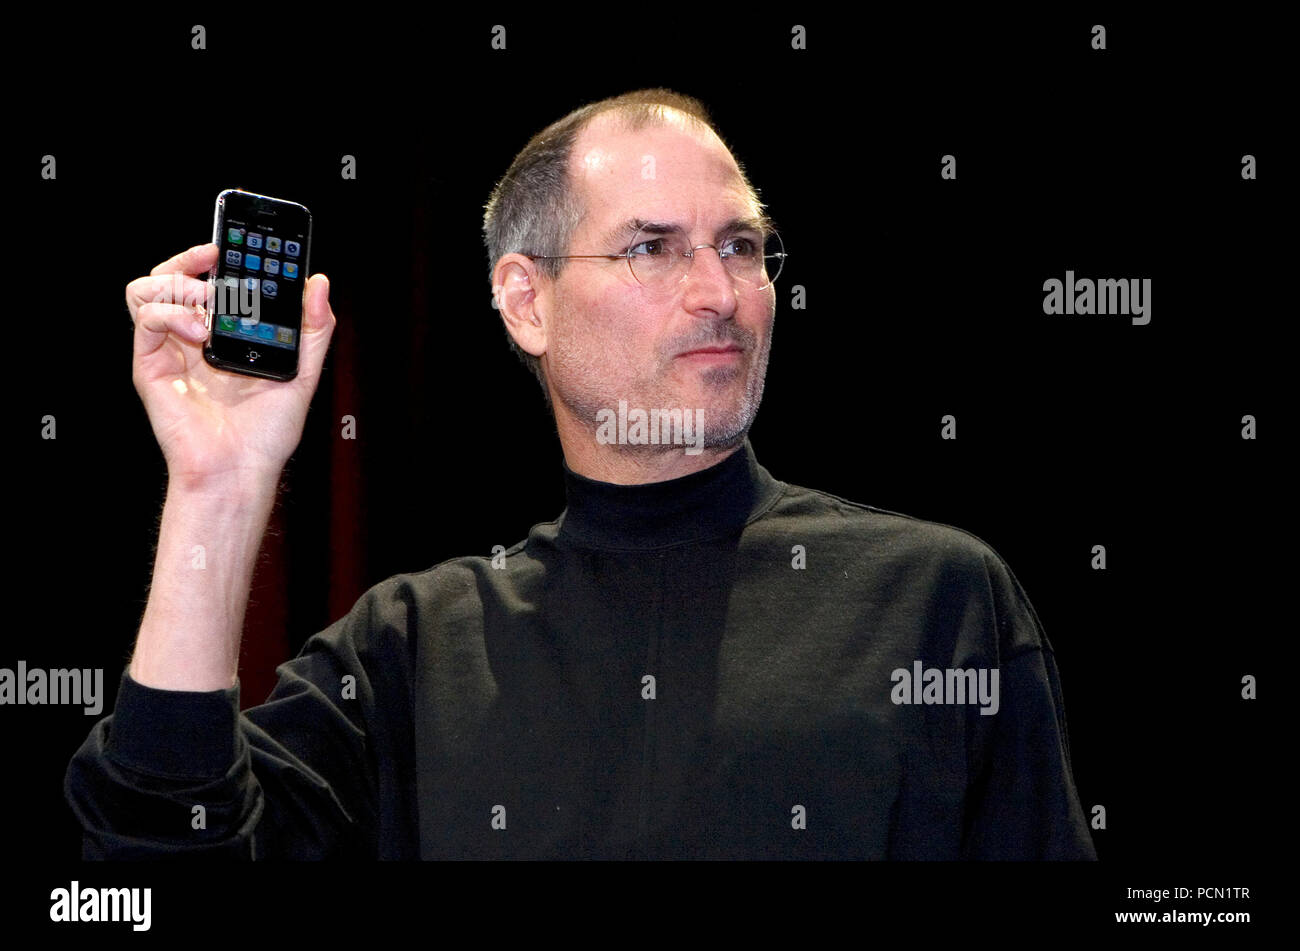 Jan 09, 2007; San Francisco, CA, USA; Apple Computer Inc. Chief Executive Officer STEVE JOBS introduces the iPhone, a mobile phone based on its best- selling iPod device, and changed the company's name to Apple Inc. at Macworld 2007 in San Francisco, California Credit: Krista Kennell/ZUMAPRESS.com/Alamy Live News - Stock Image